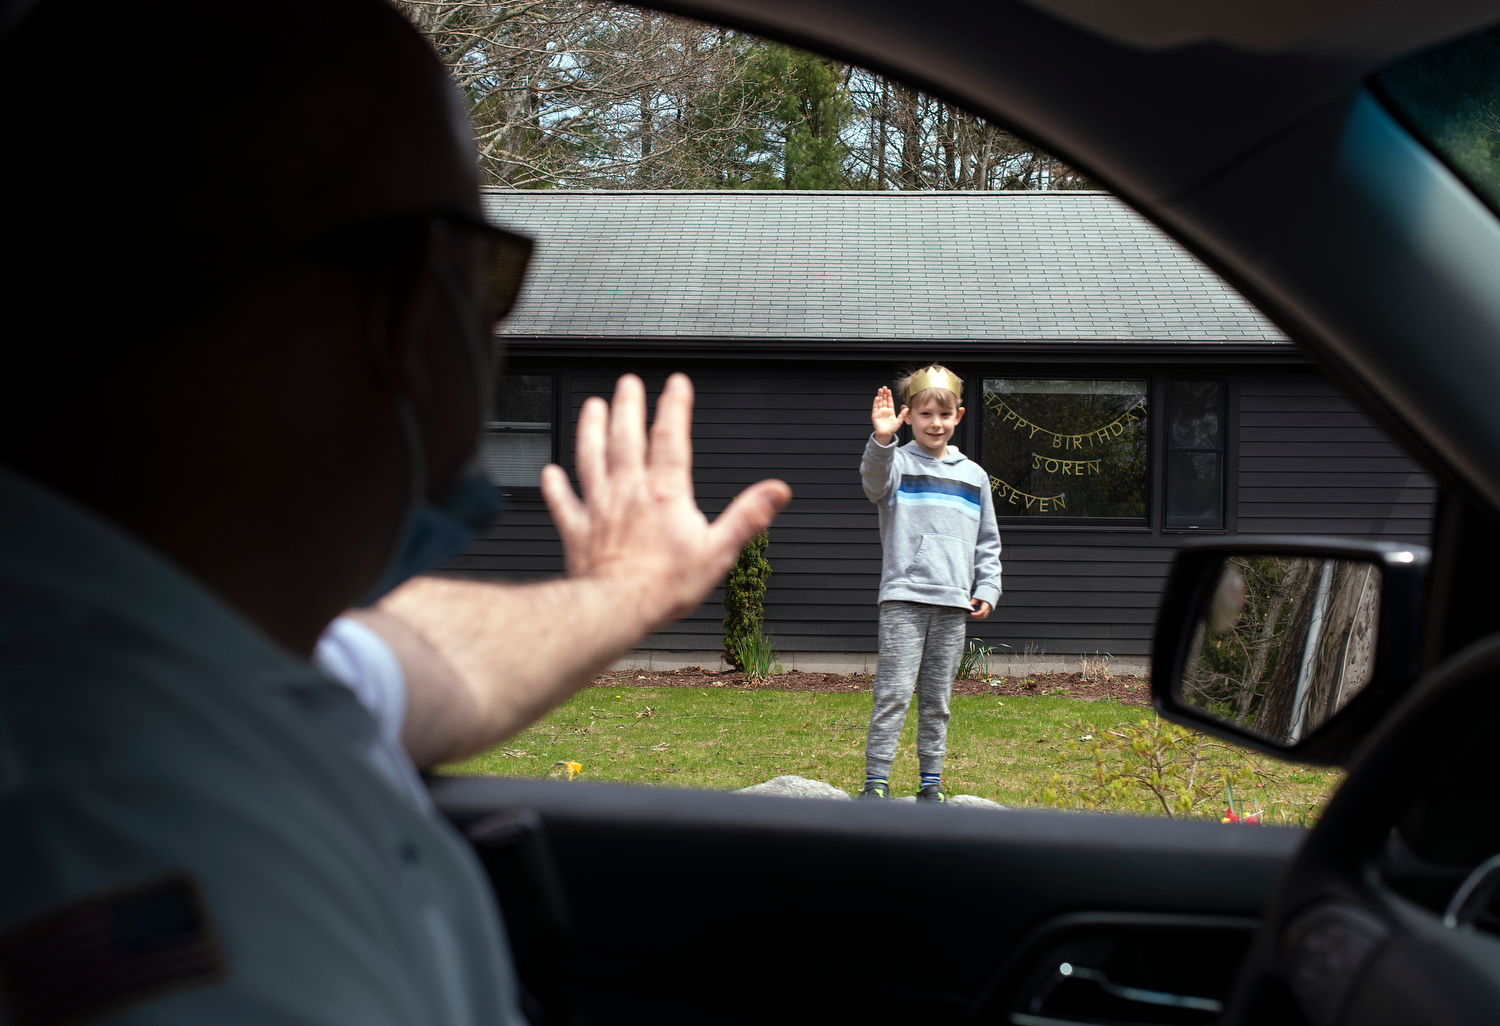 C.O.M.M. Fire District Captain Chris Adams waves to Soren Wake, 7, while participating in a birthday parade of emergency vehicles on Wednesday, May 6, 2020.